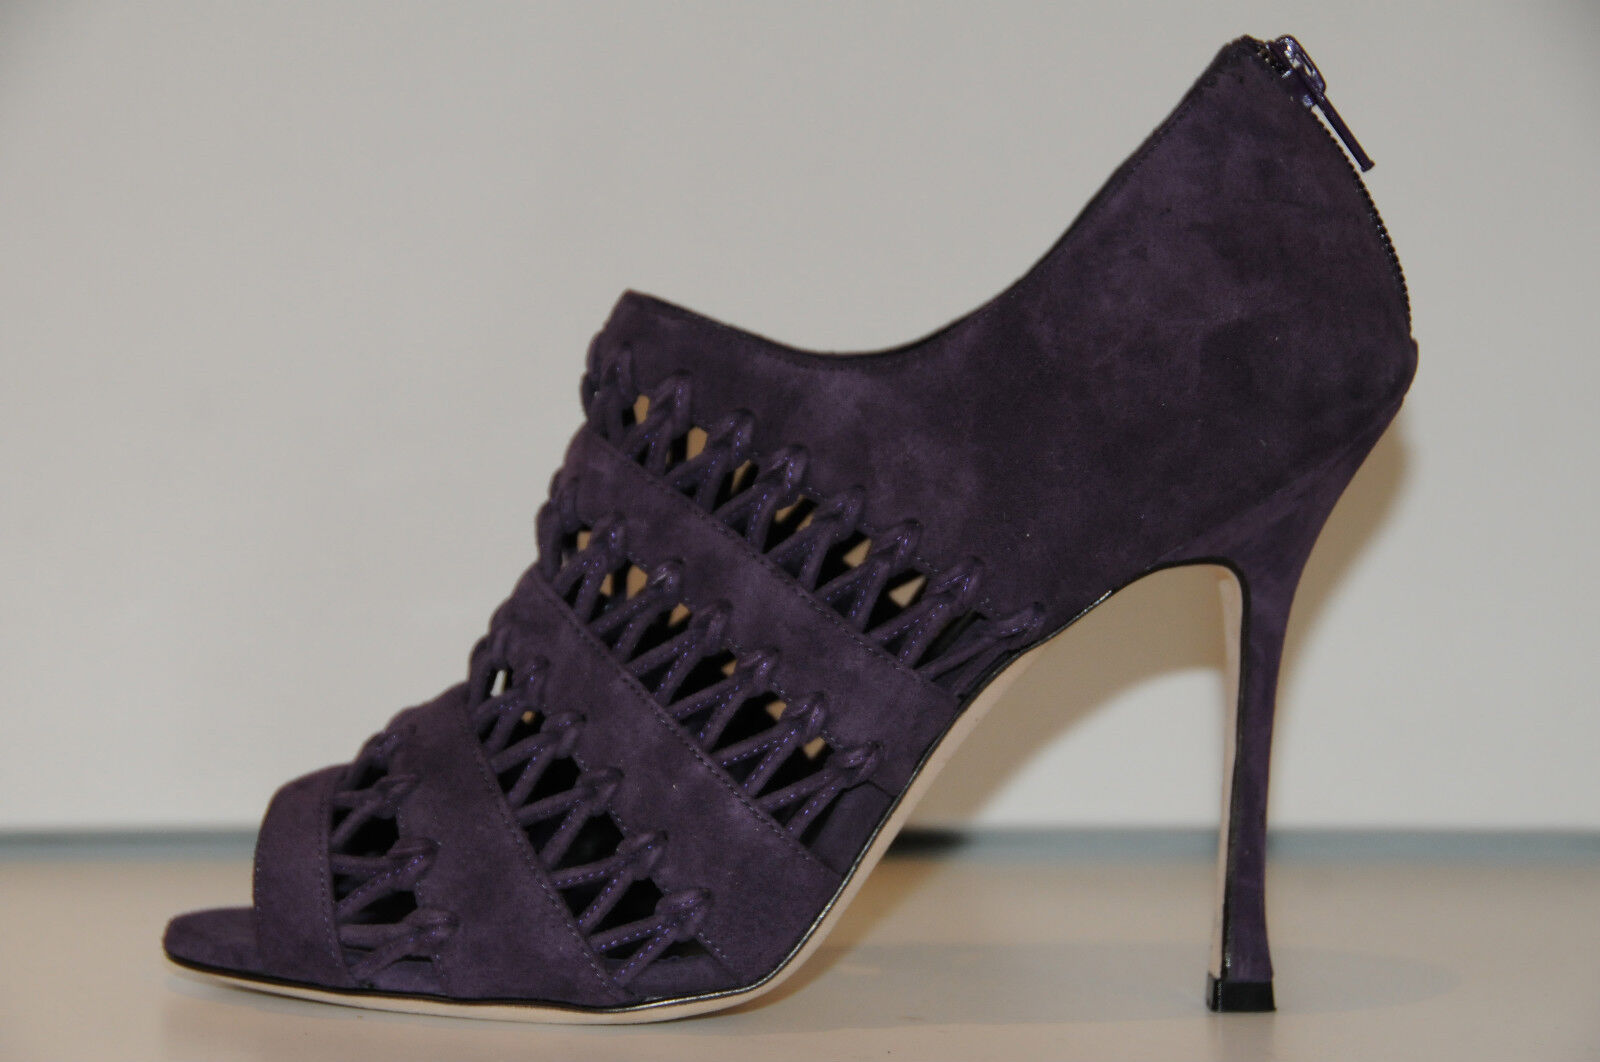 1345 New MANOLO BLAHNIK PILA Dk Purple SUEDE SANDALS BOOTIES BOOTS SHOES 39.5